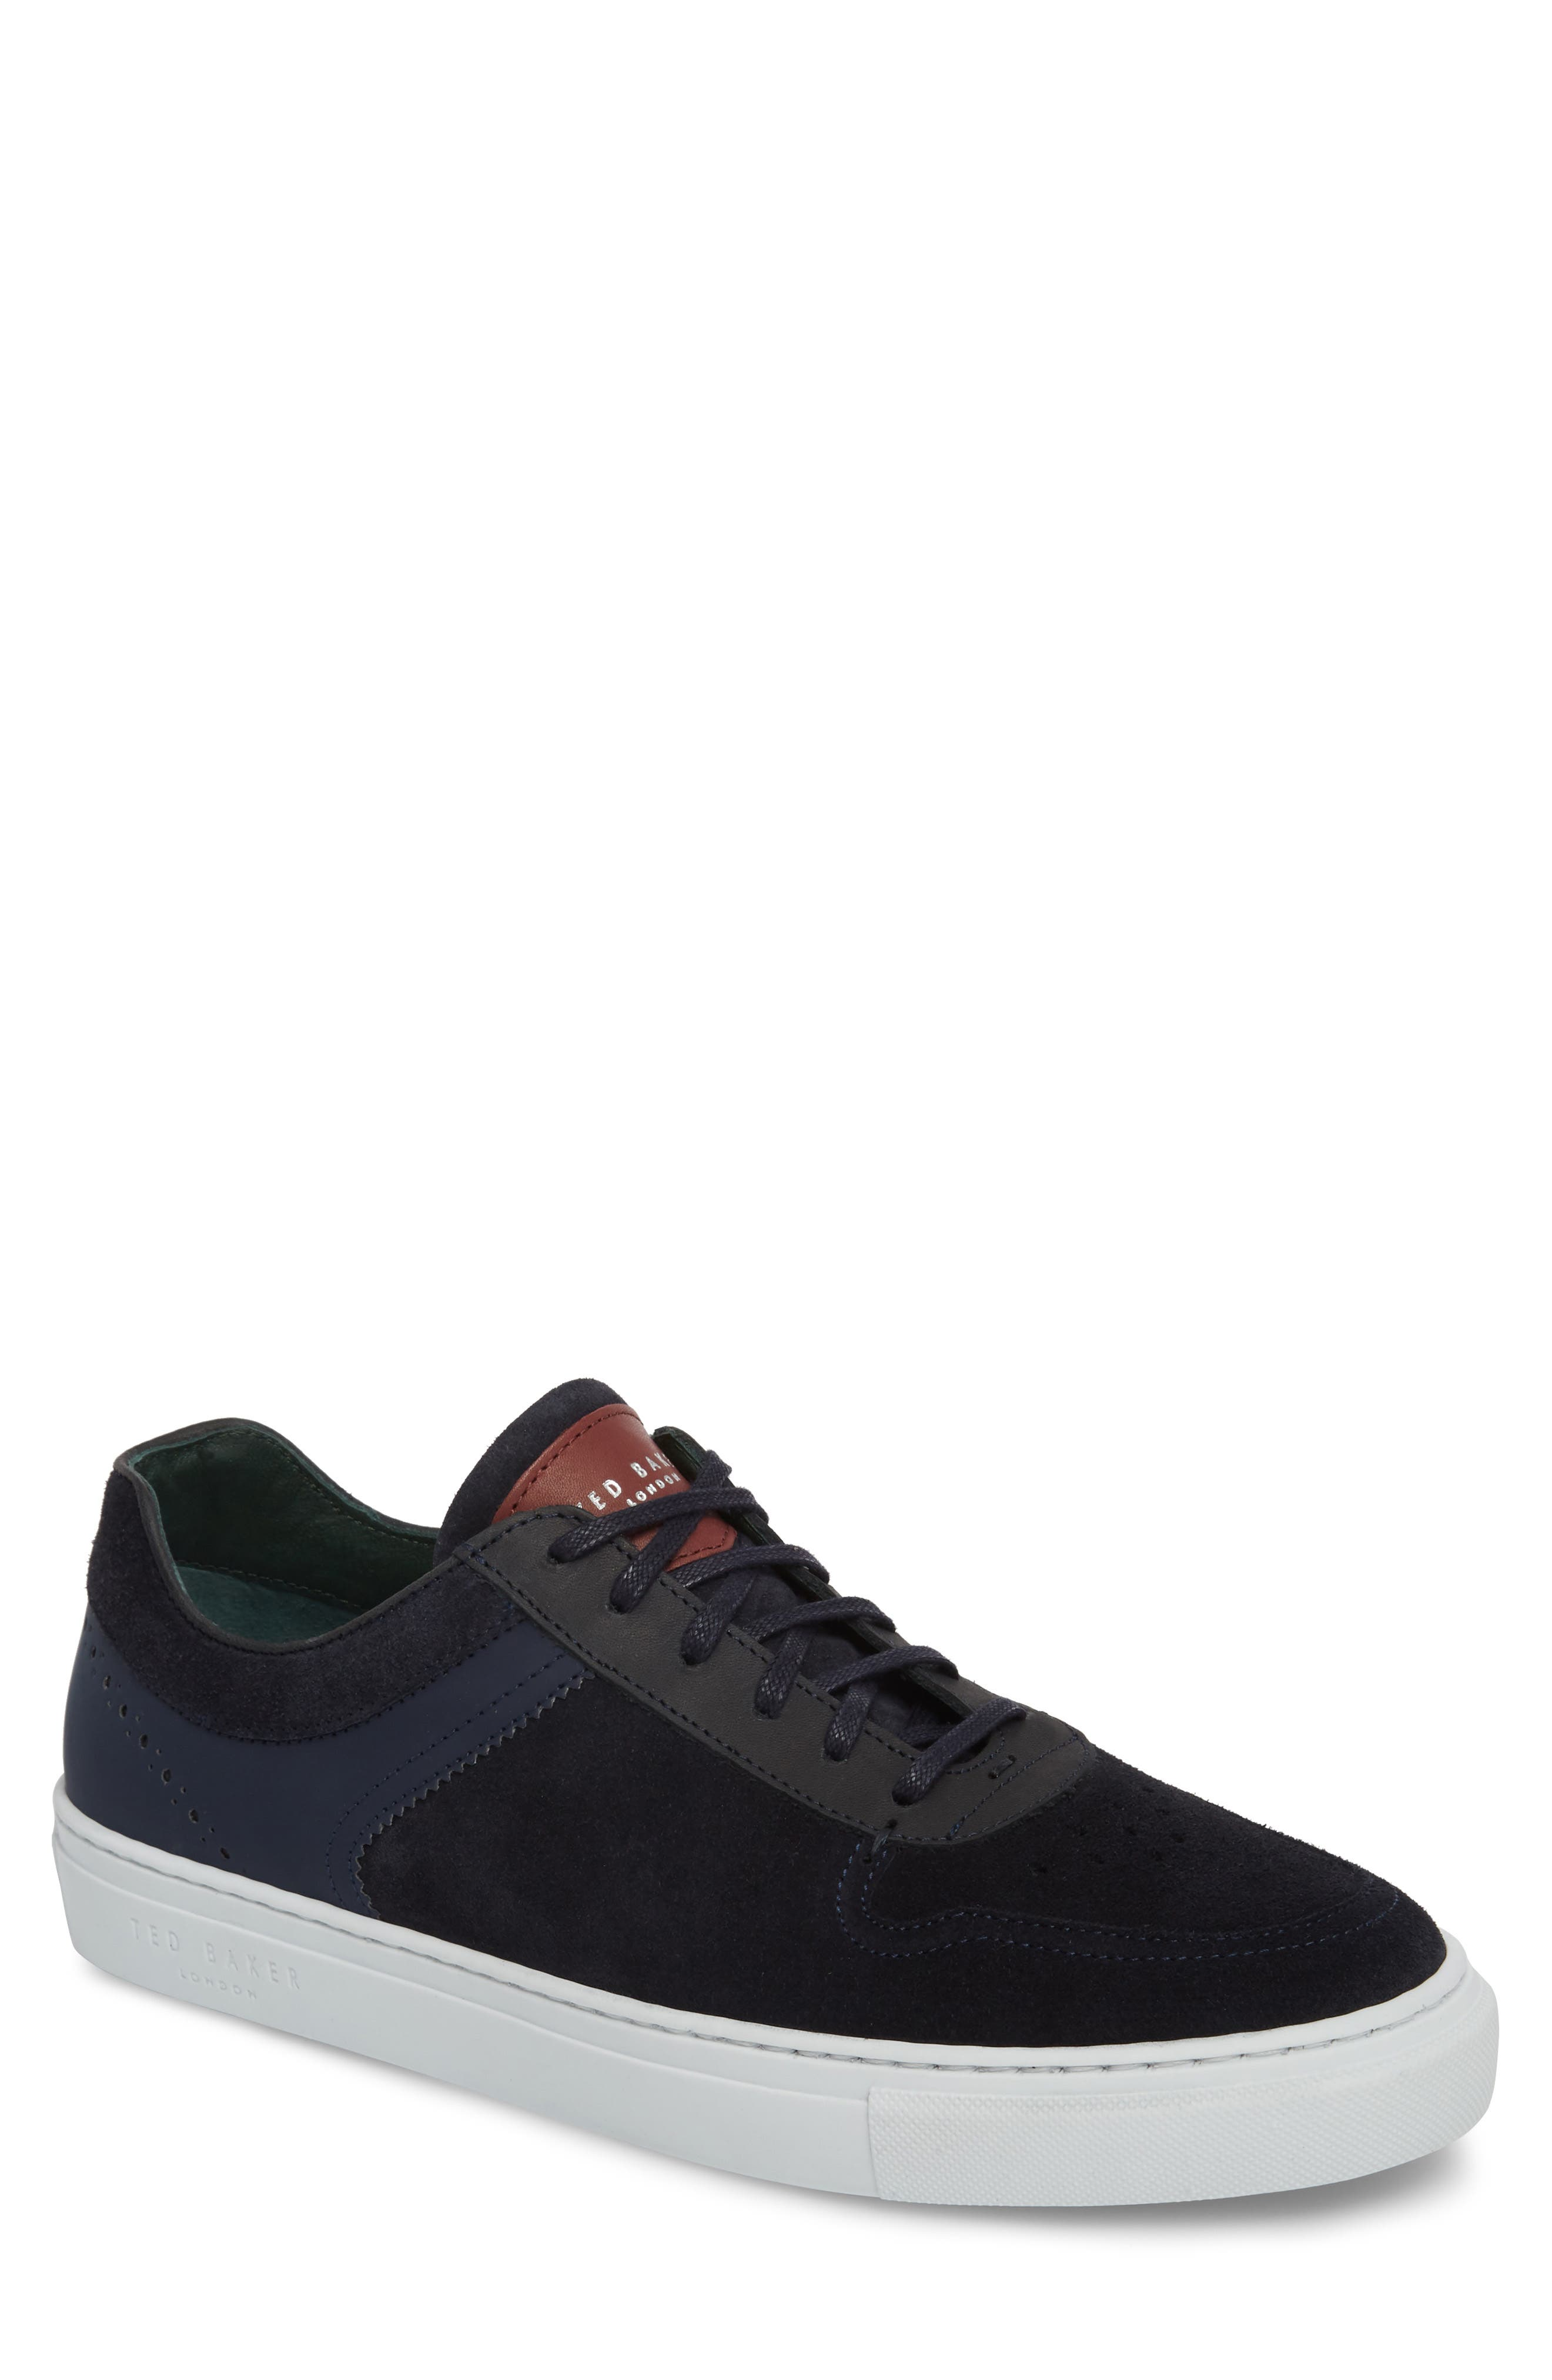 Burall Sneaker,                         Main,                         color, Dark Blue Suede/ Textile